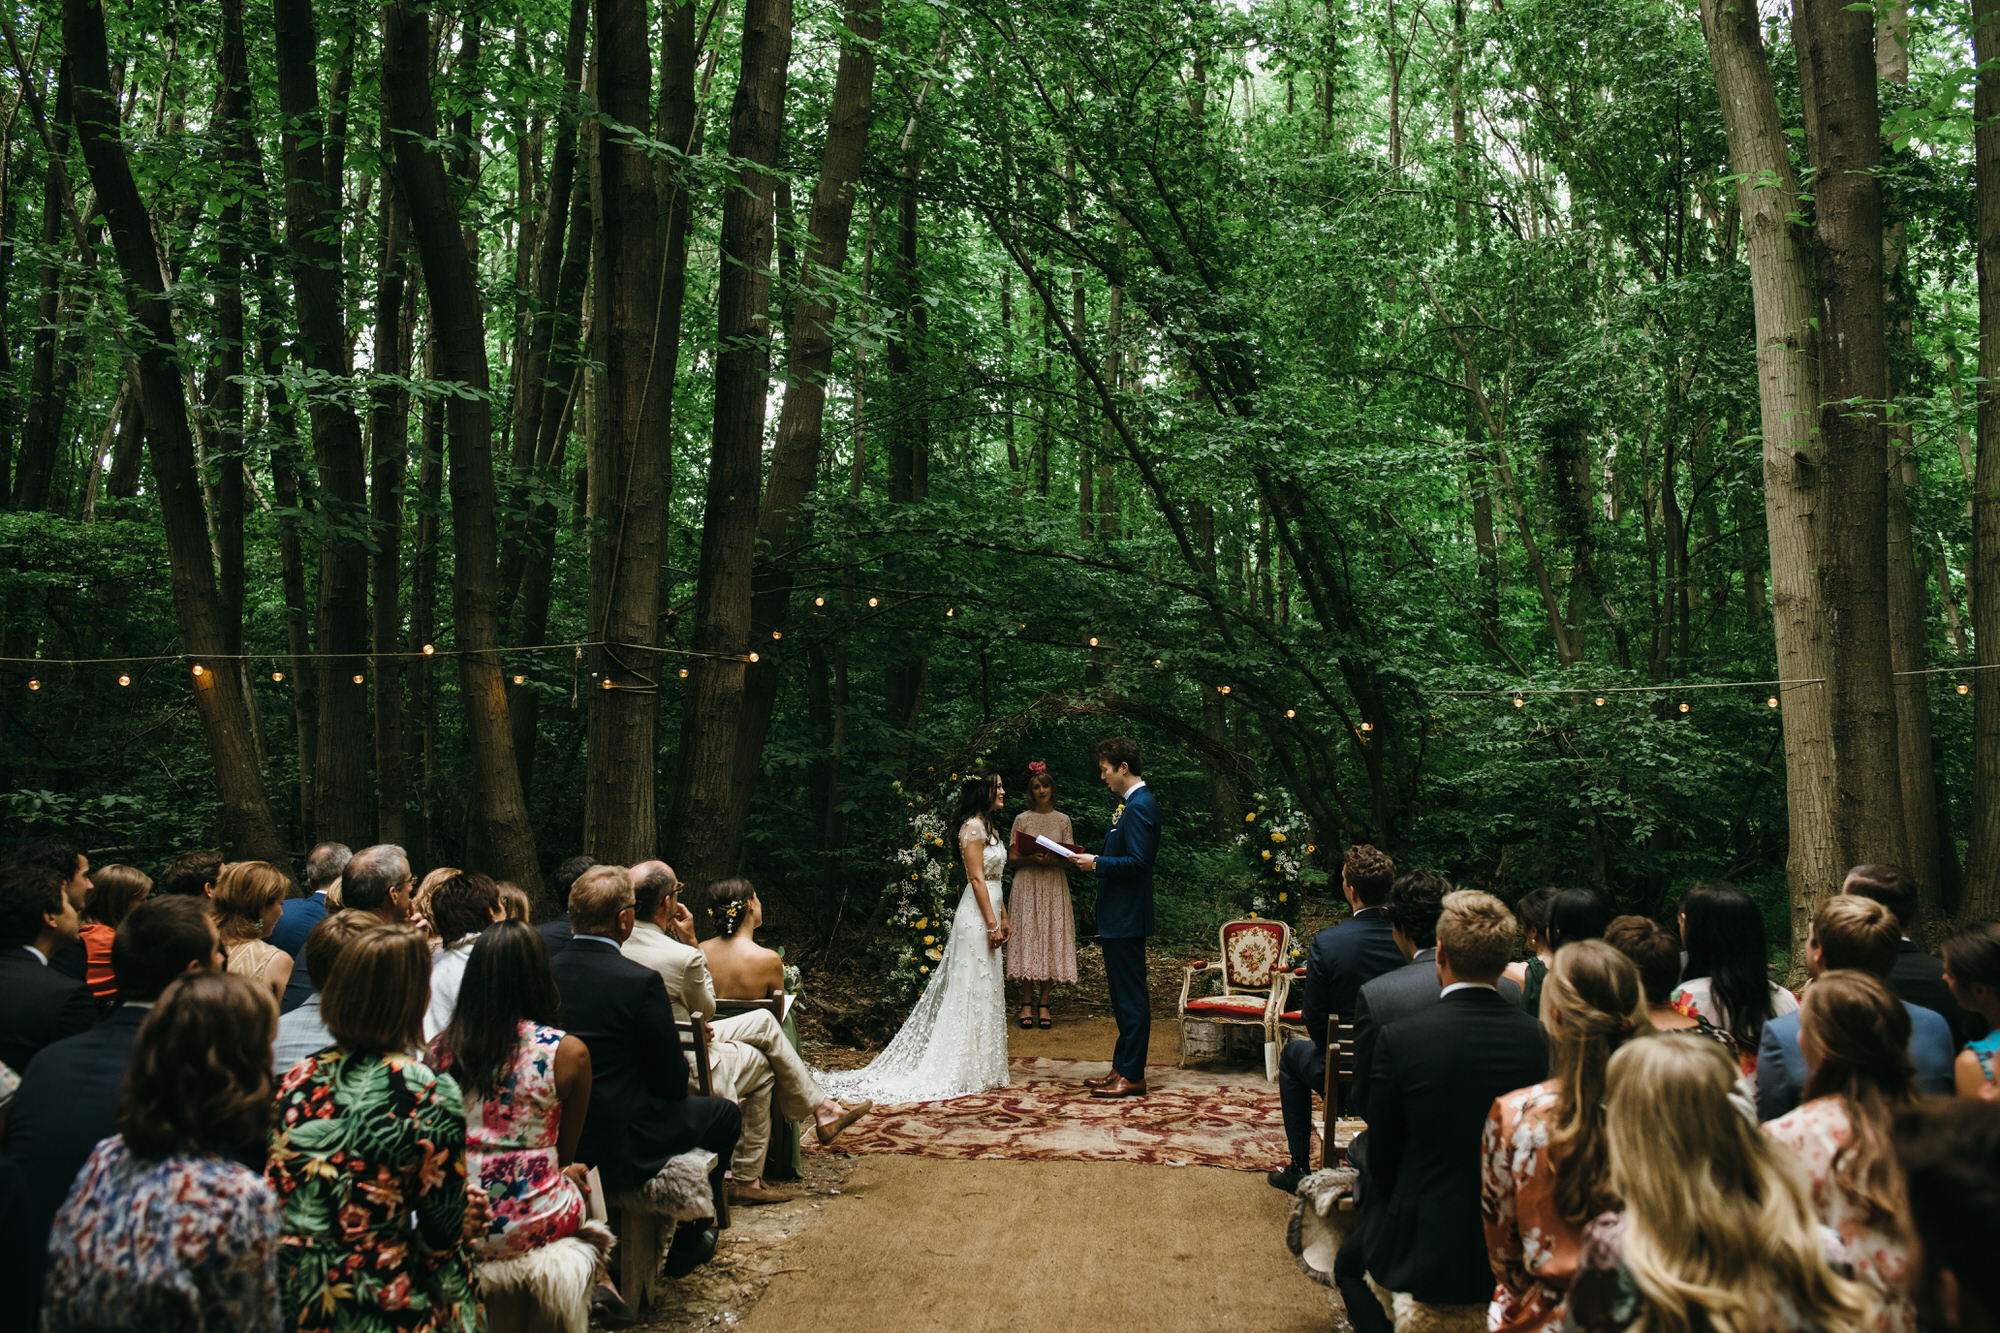 The dreys wedding ceremony